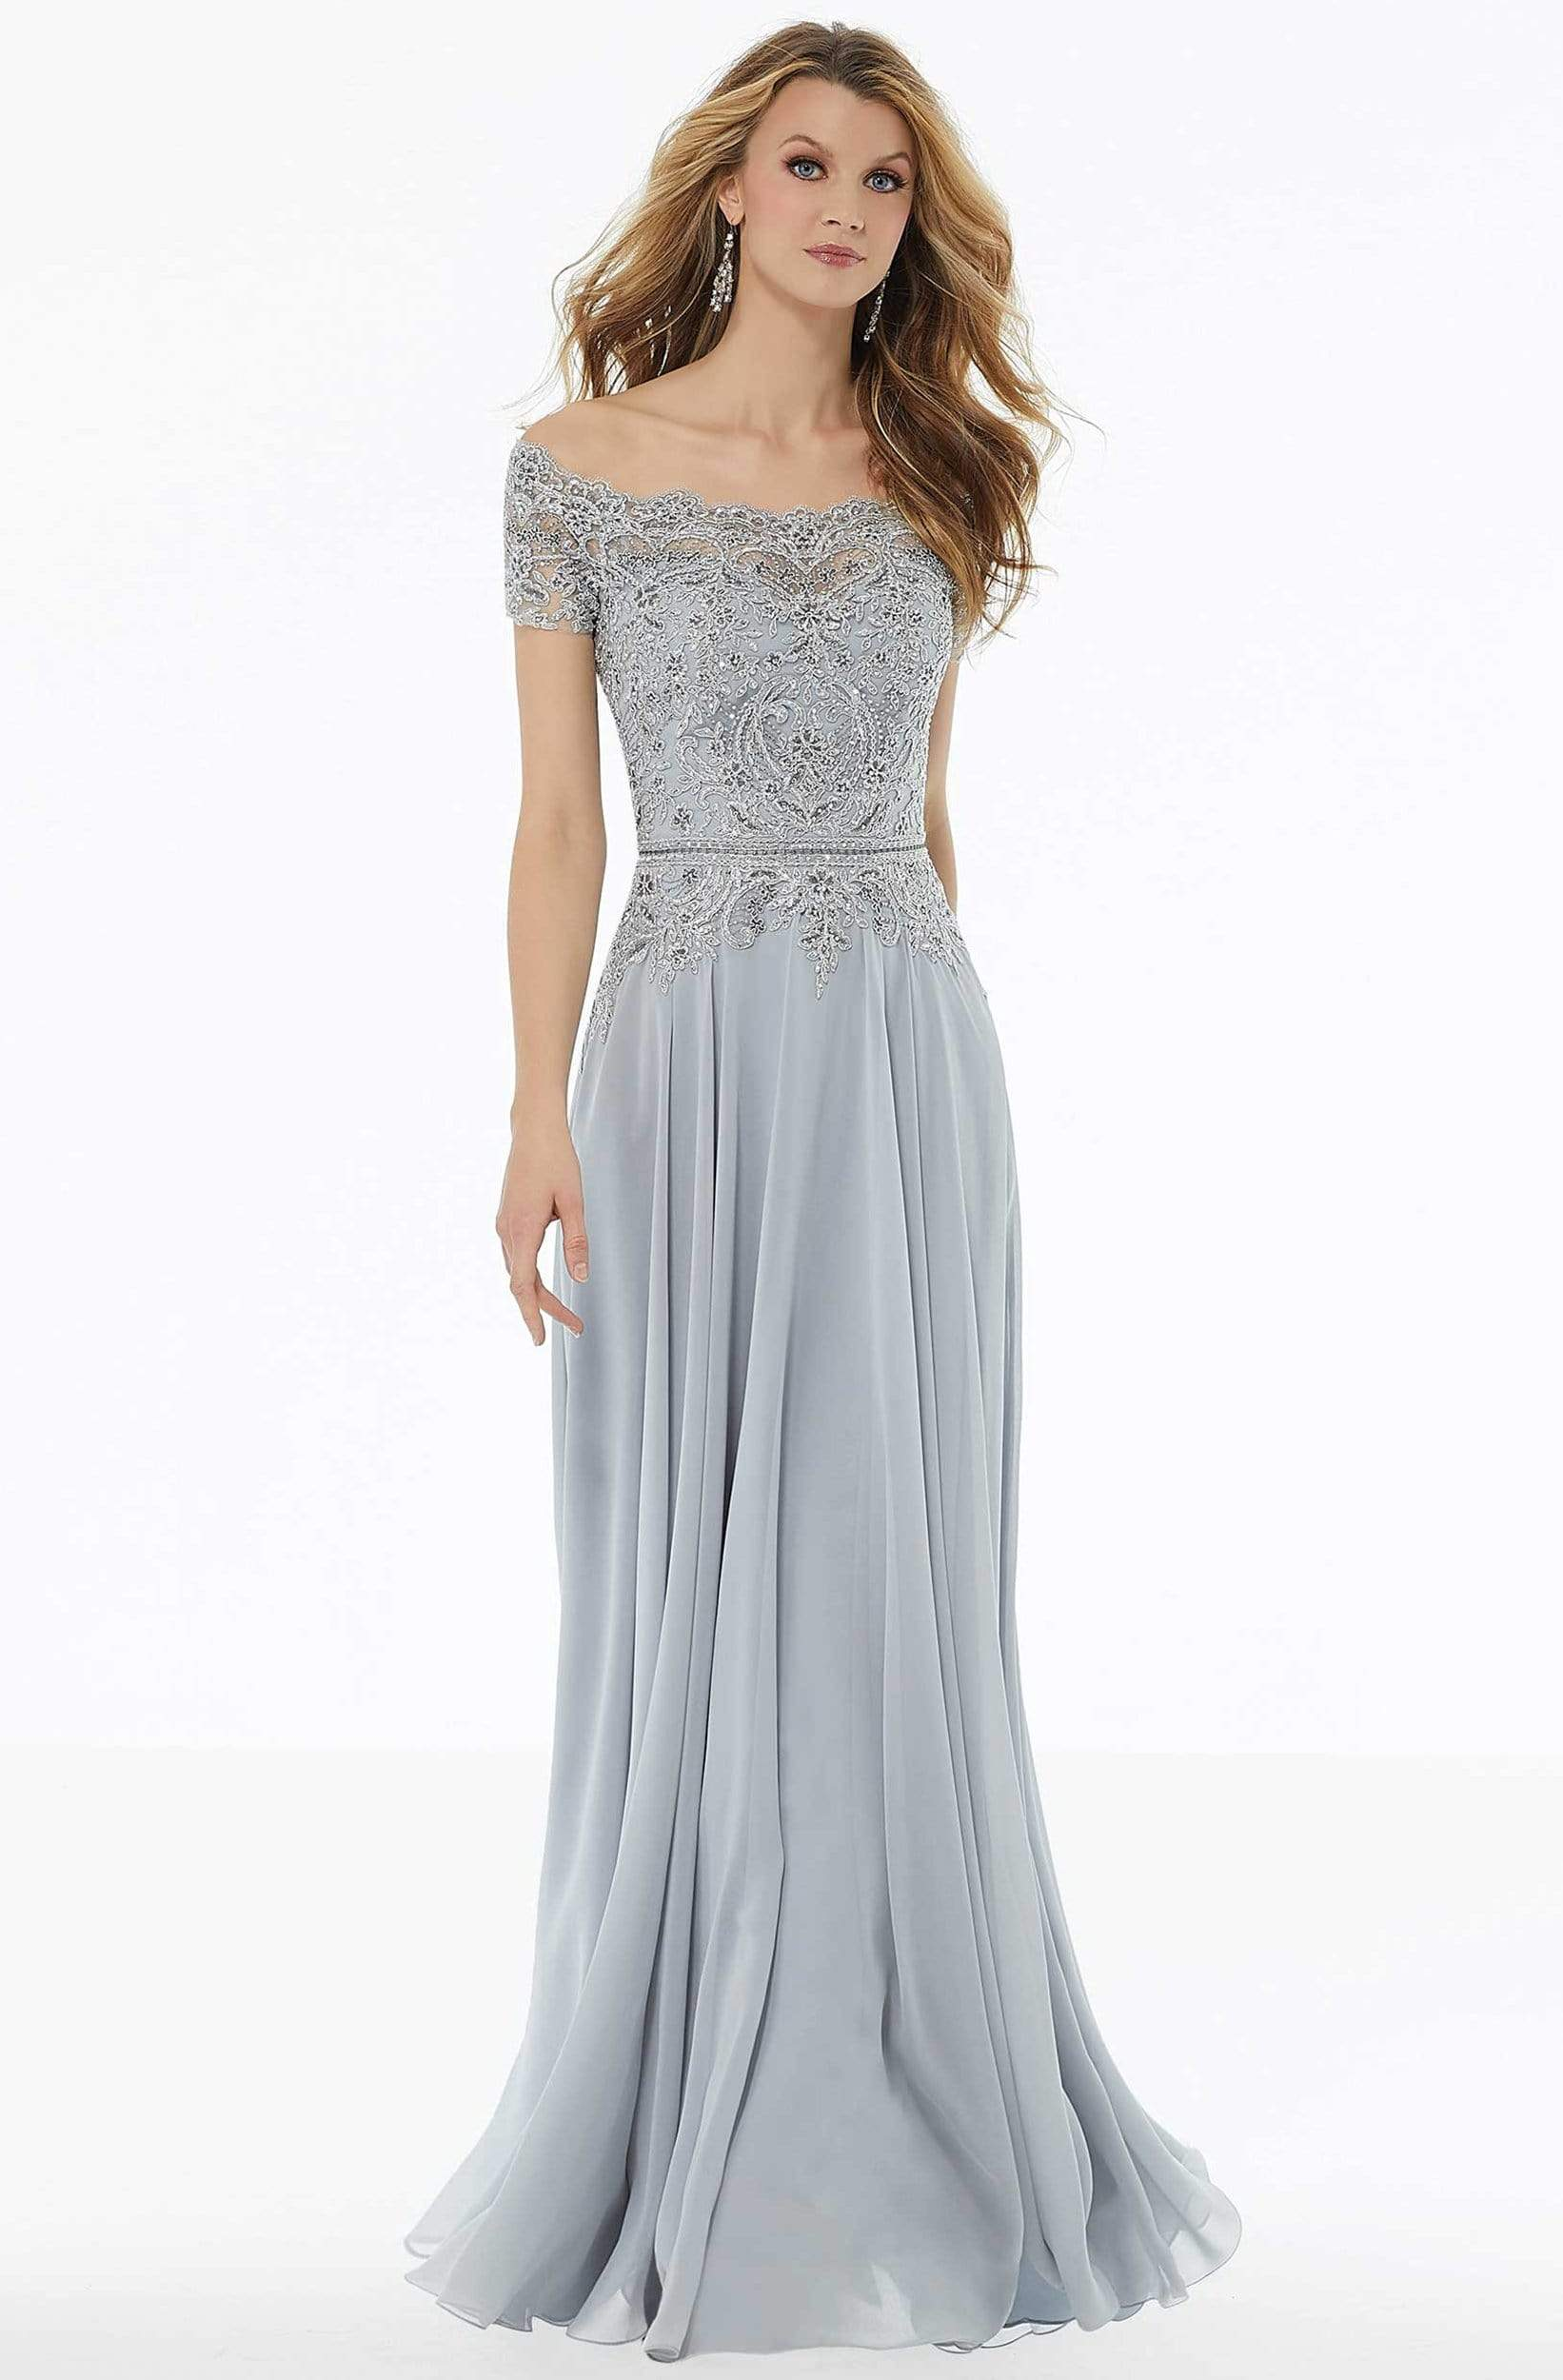 MGNY By Mori Lee - 72133 Off Shoulder Lace Appliqued Chiffon Dress Mother of the Bride Dresses 2 / Silver